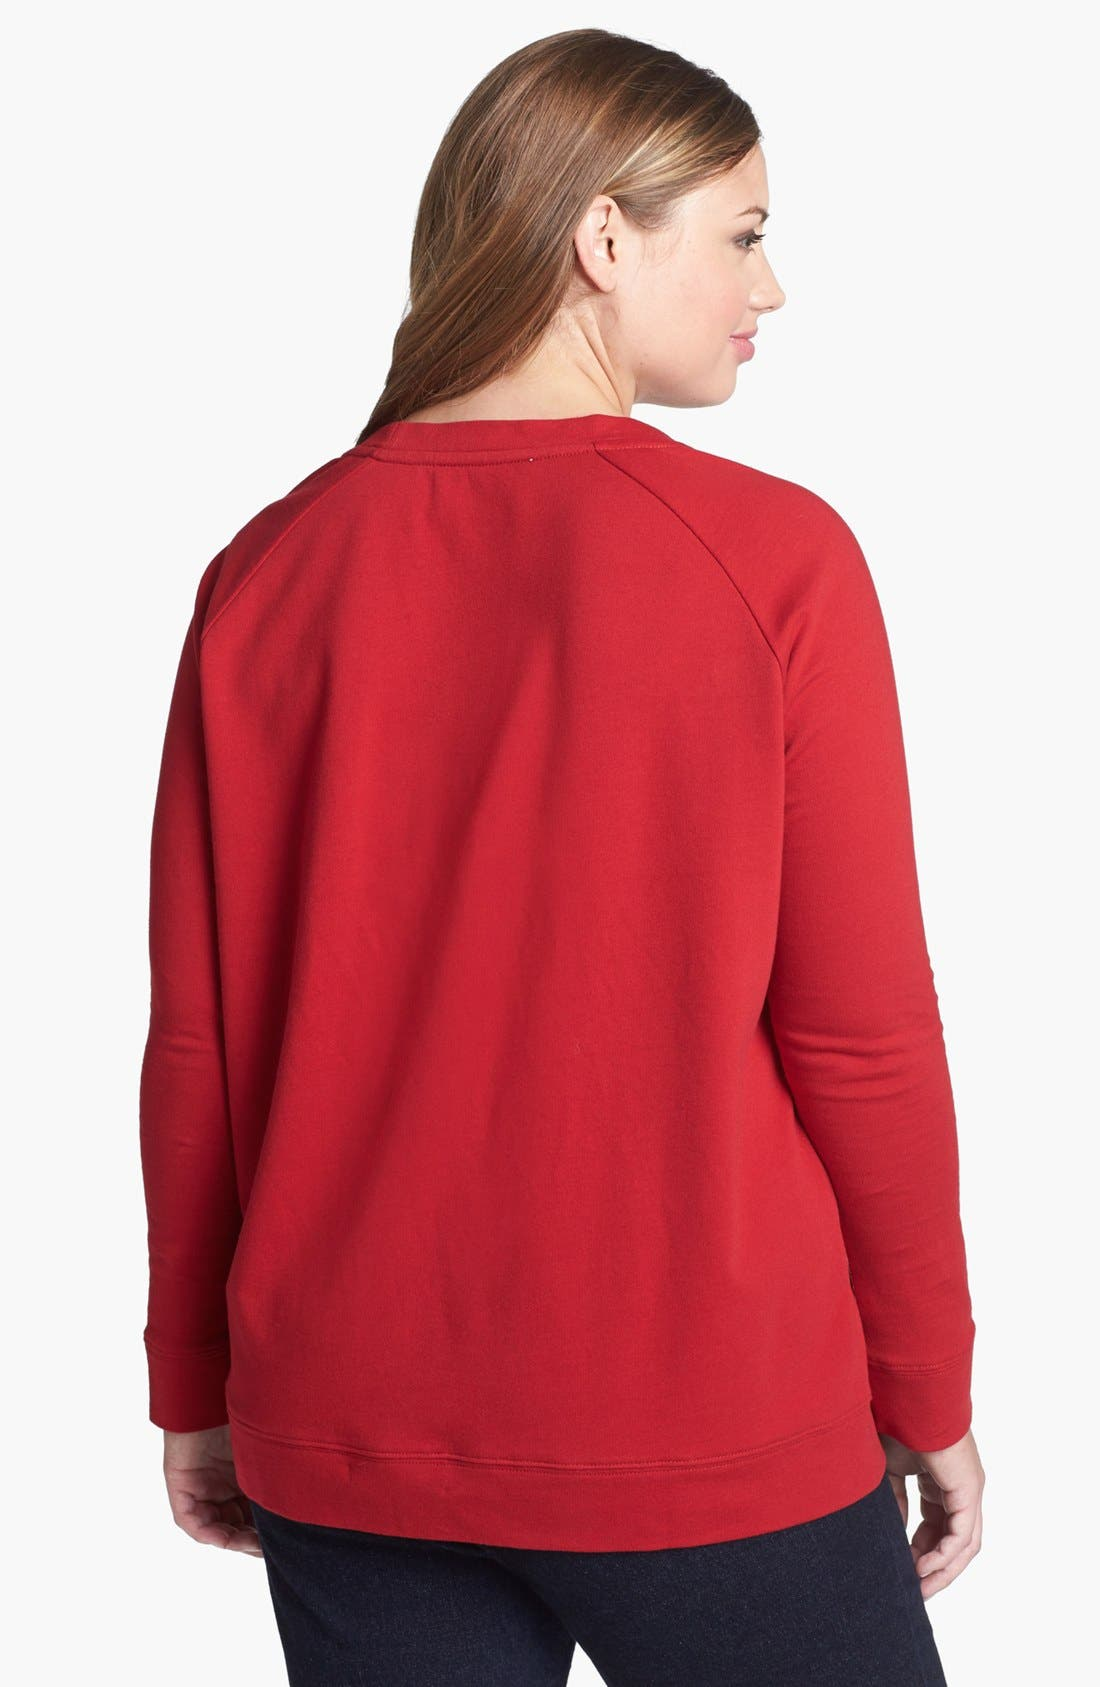 Alternate Image 2  - Two by Vince Camuto Jeweled Raglan Sleeve Sweatshirt (Plus Size)